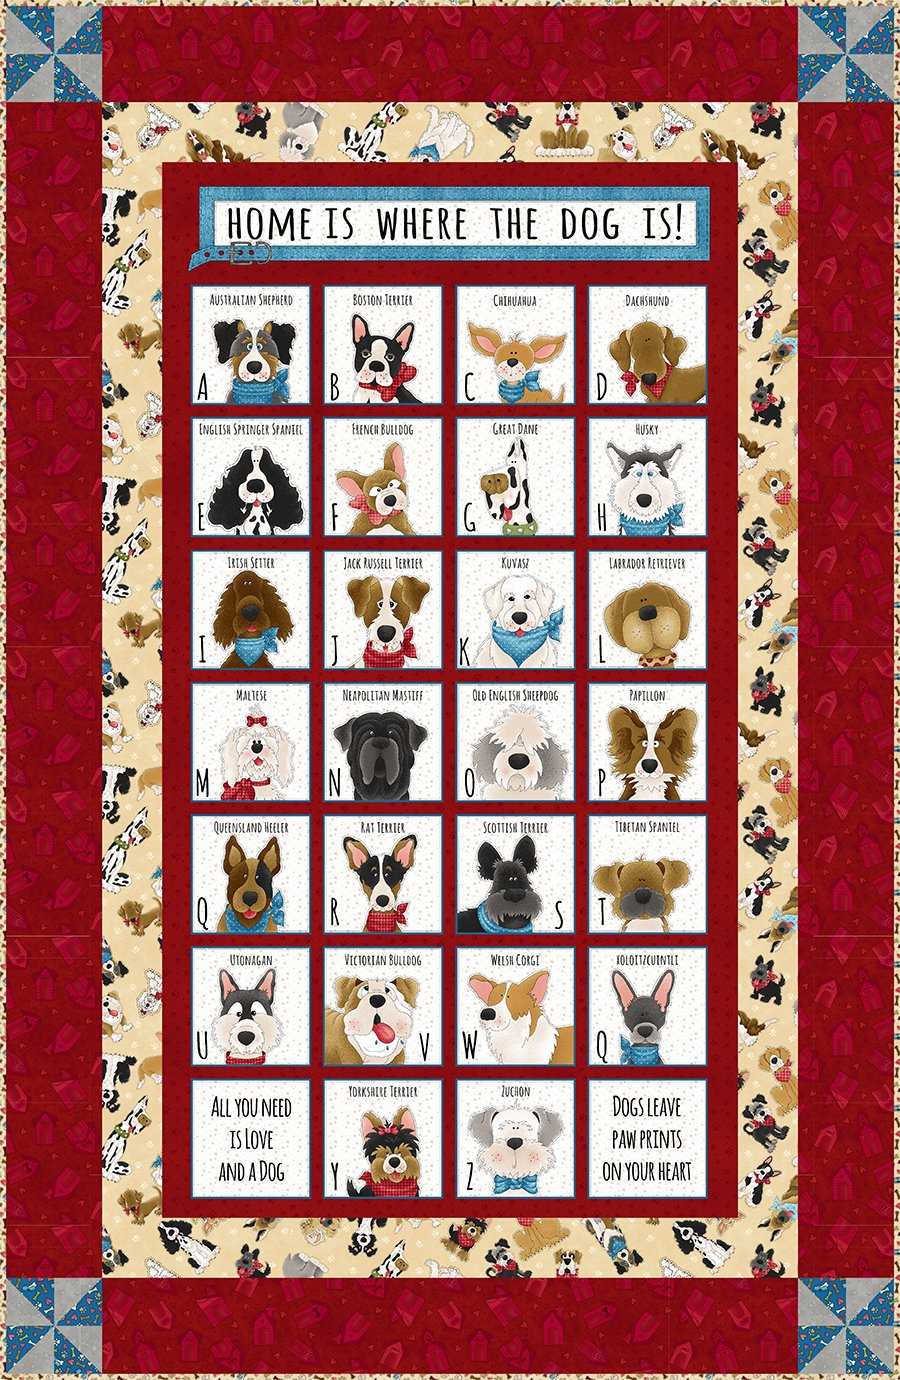 Home Is Where the Dog Is Alphabet Panel Quilt